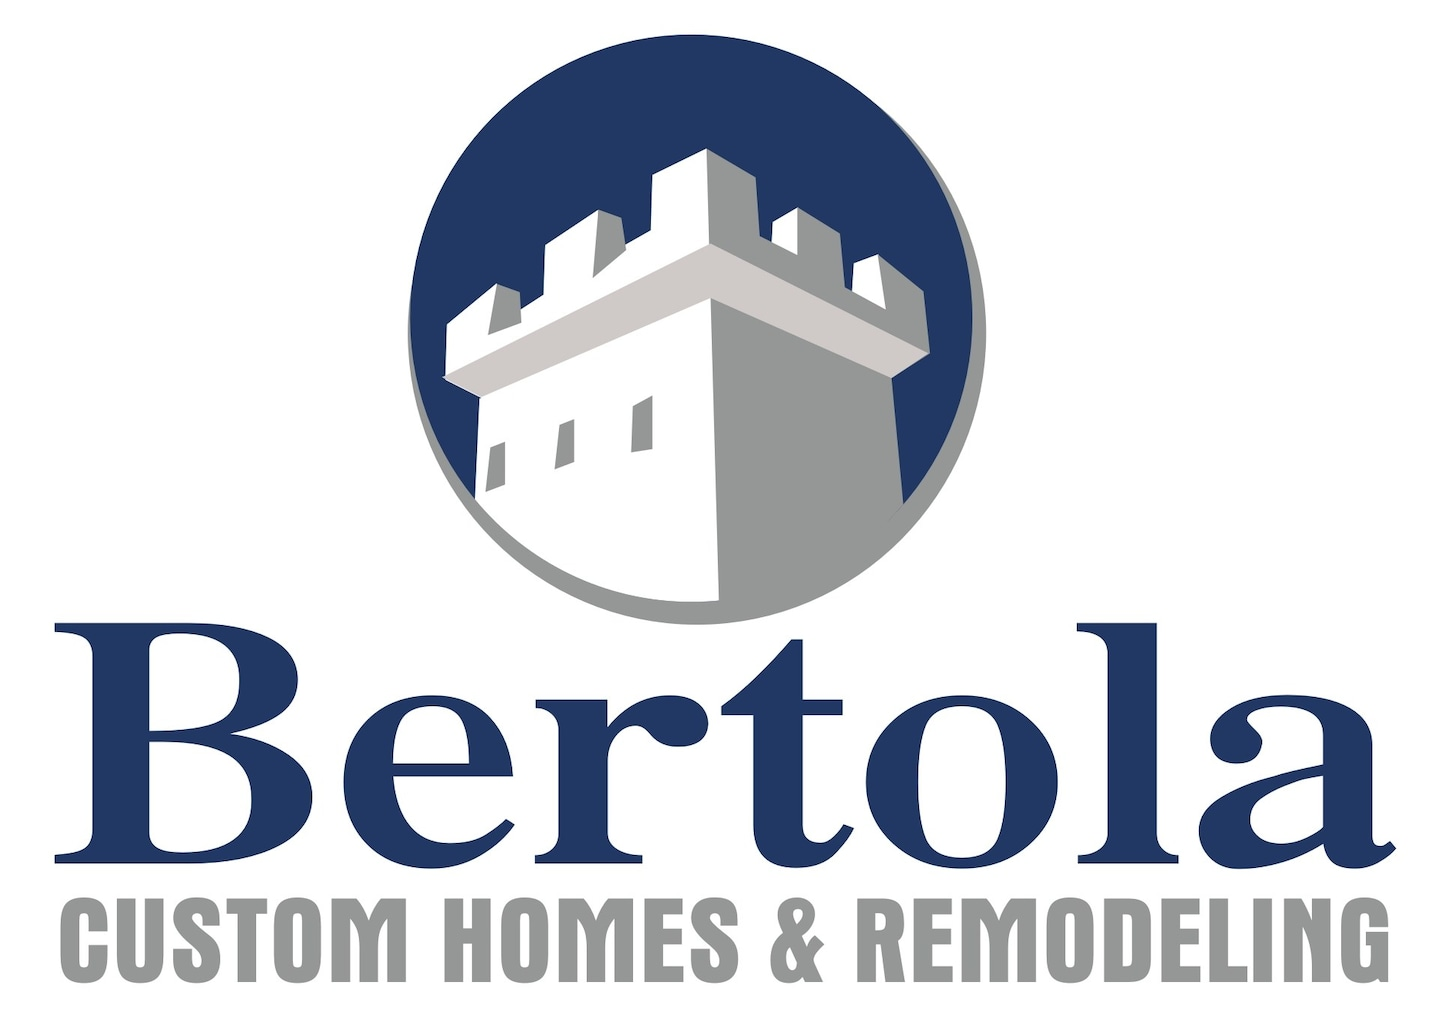 Bertola Custom Homes & Remodeling